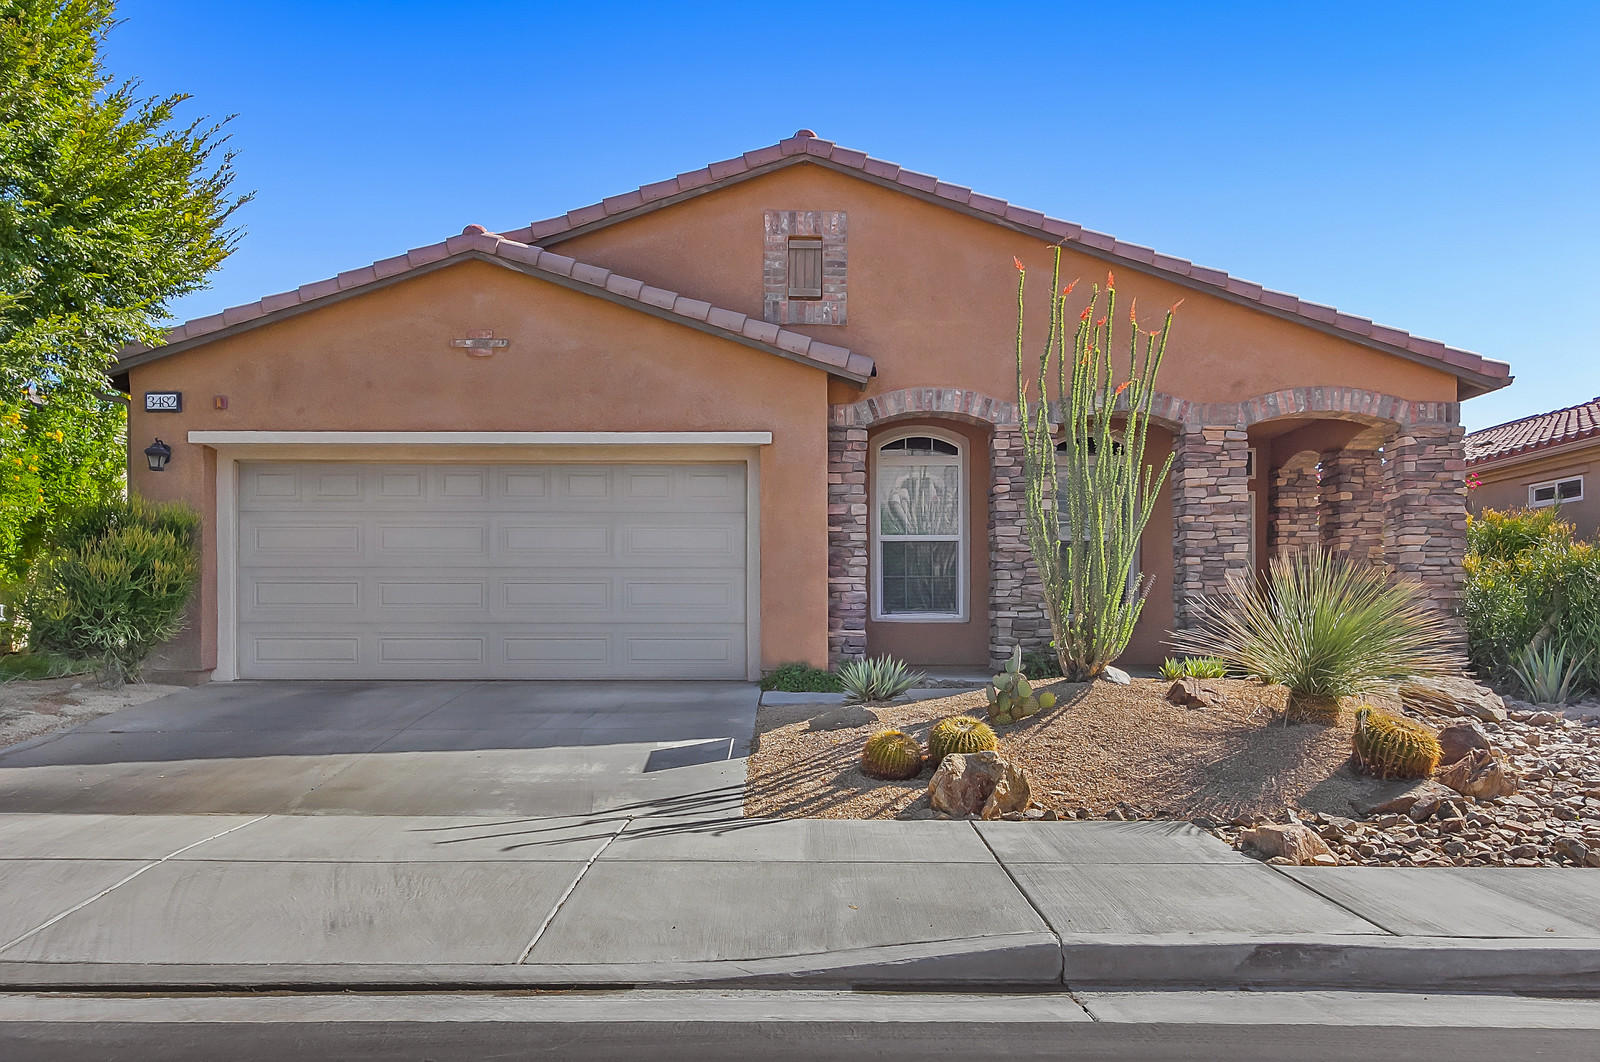 Photo of 3482 Date Palm Trail, Palm Springs, CA 92262